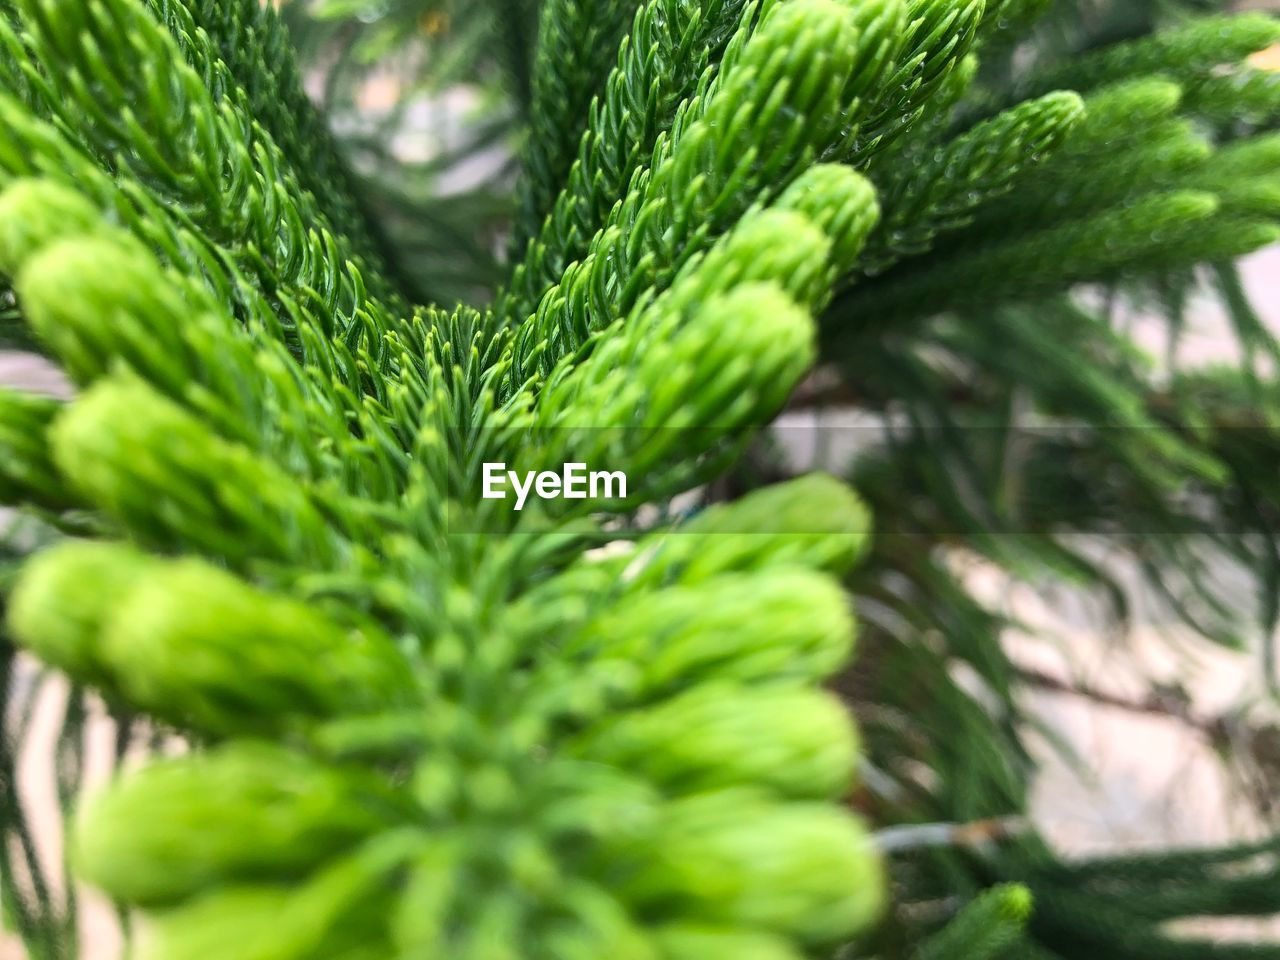 green color, growth, plant, close-up, plant part, leaf, selective focus, no people, day, nature, beauty in nature, focus on foreground, pine tree, freshness, outdoors, coniferous tree, tree, natural pattern, full frame, pattern, needle - plant part, fir tree